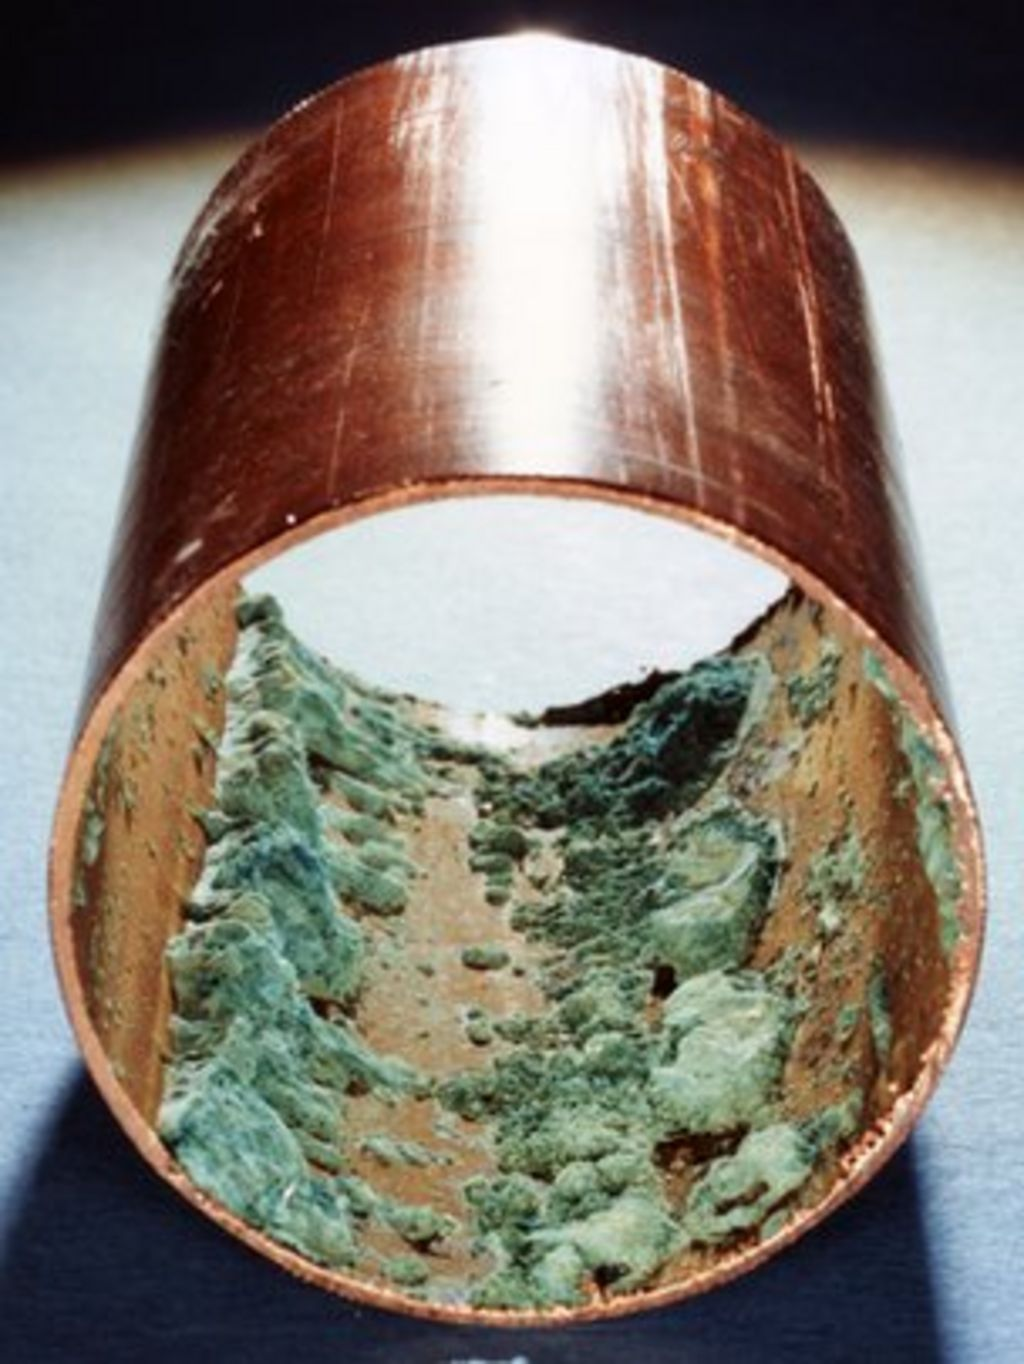 Latest High Grade Copper & Commodities Articles